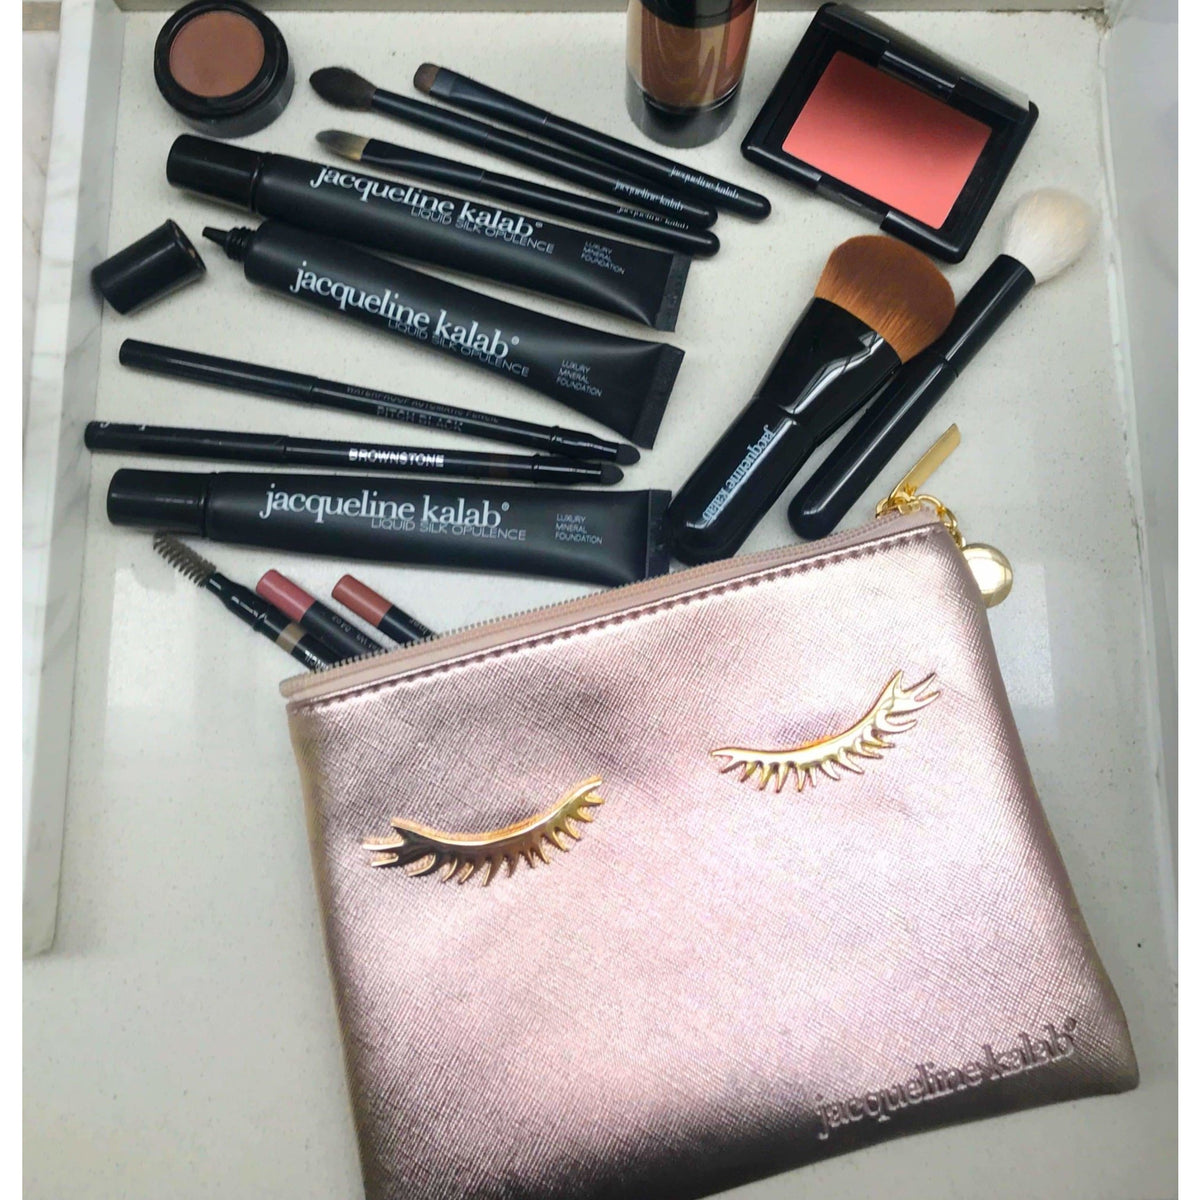 The Ultimate Makeup Bag - MyMakeup.Store by Jacqueline Kalab